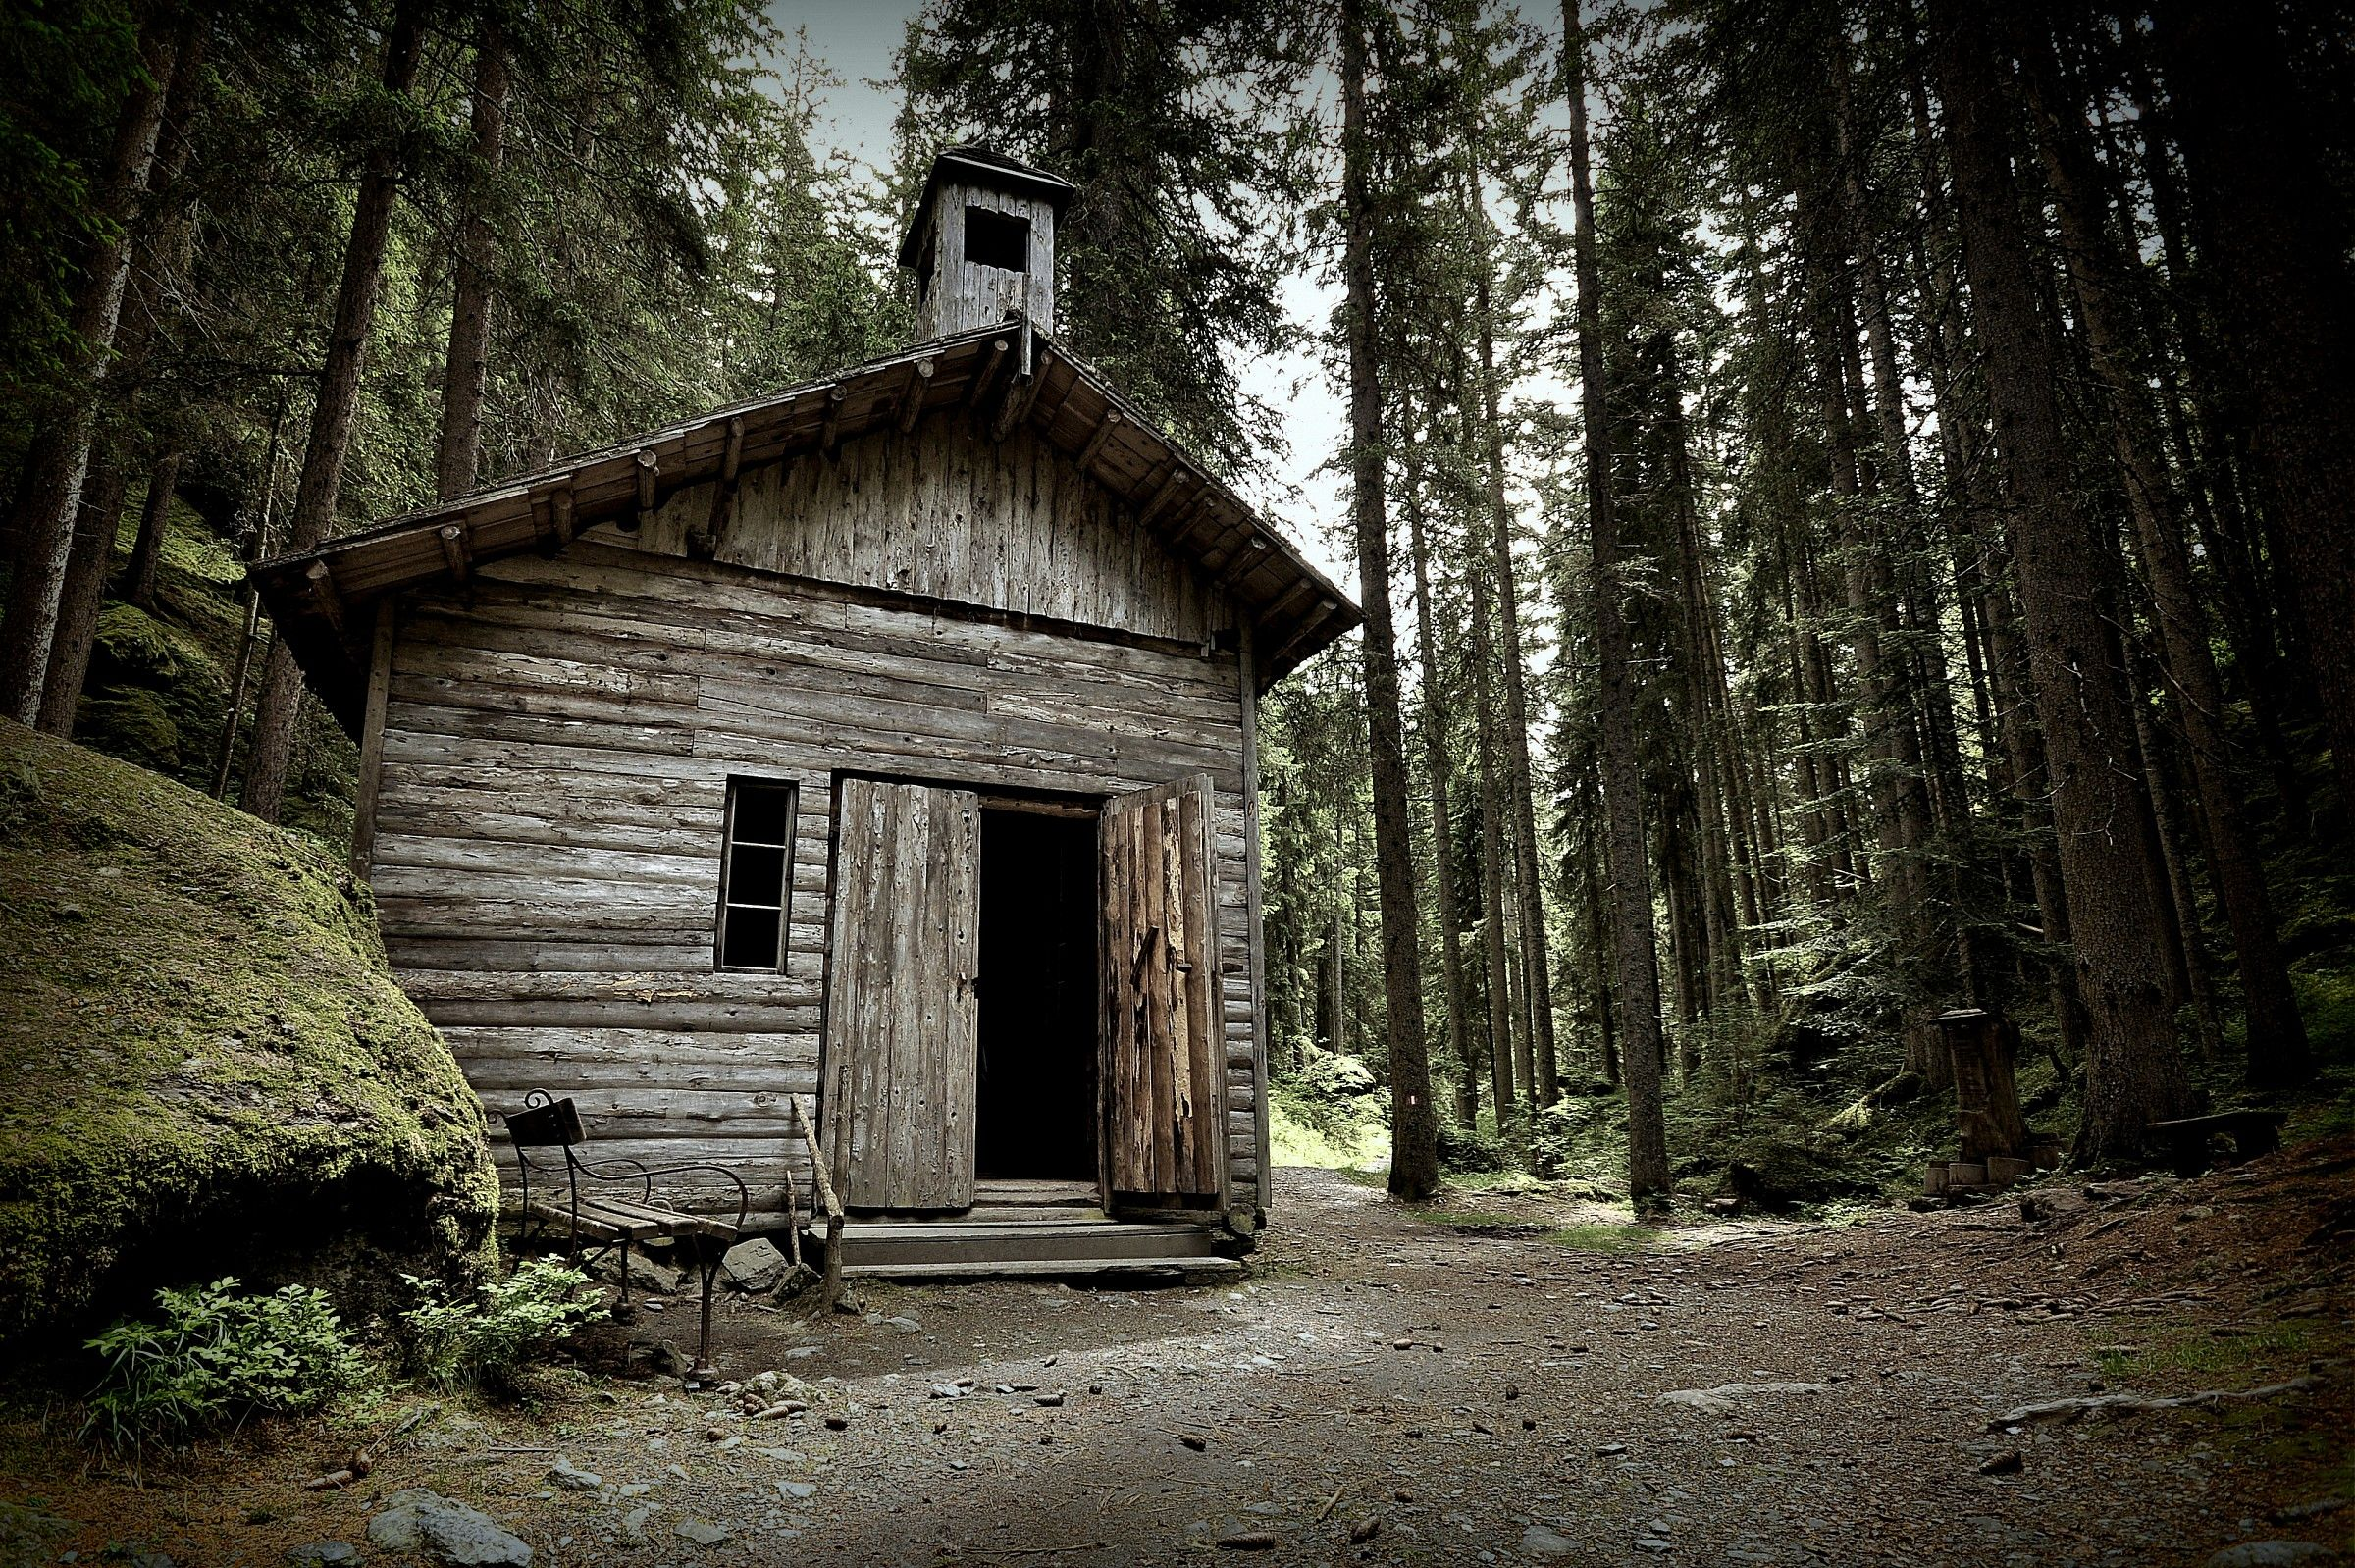 The house in the woods...